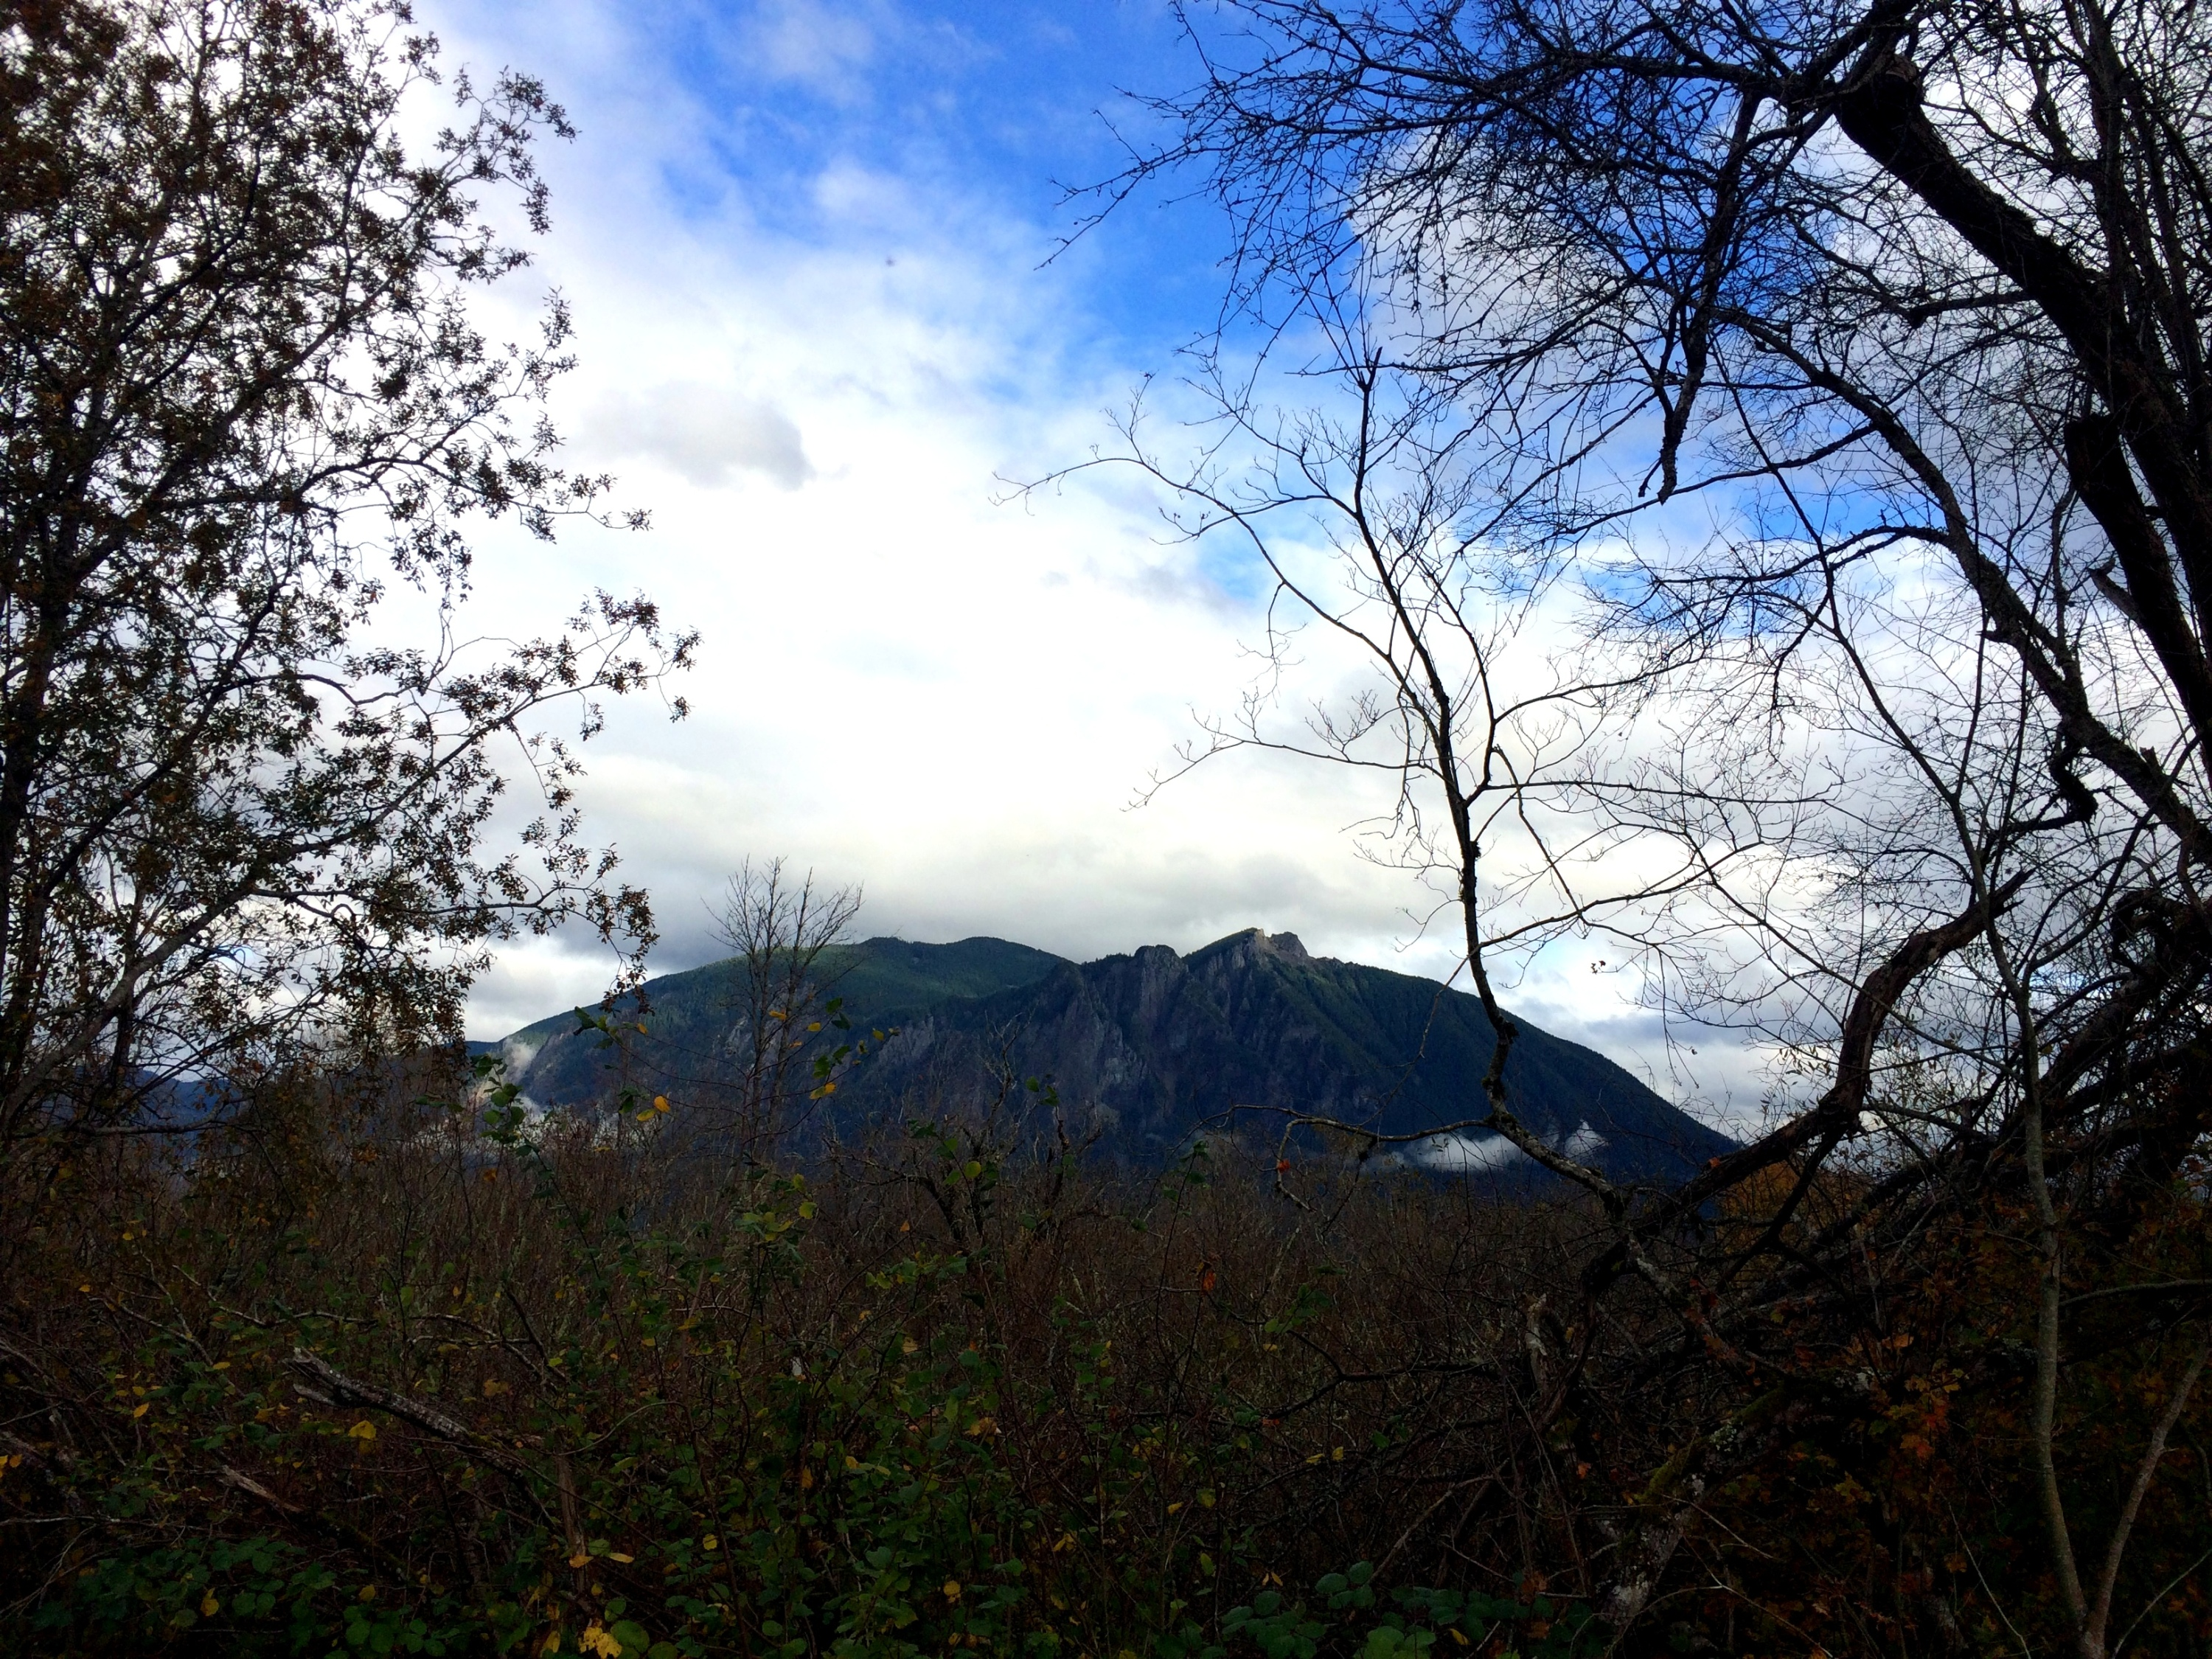 october 29th, 2016 in north bend